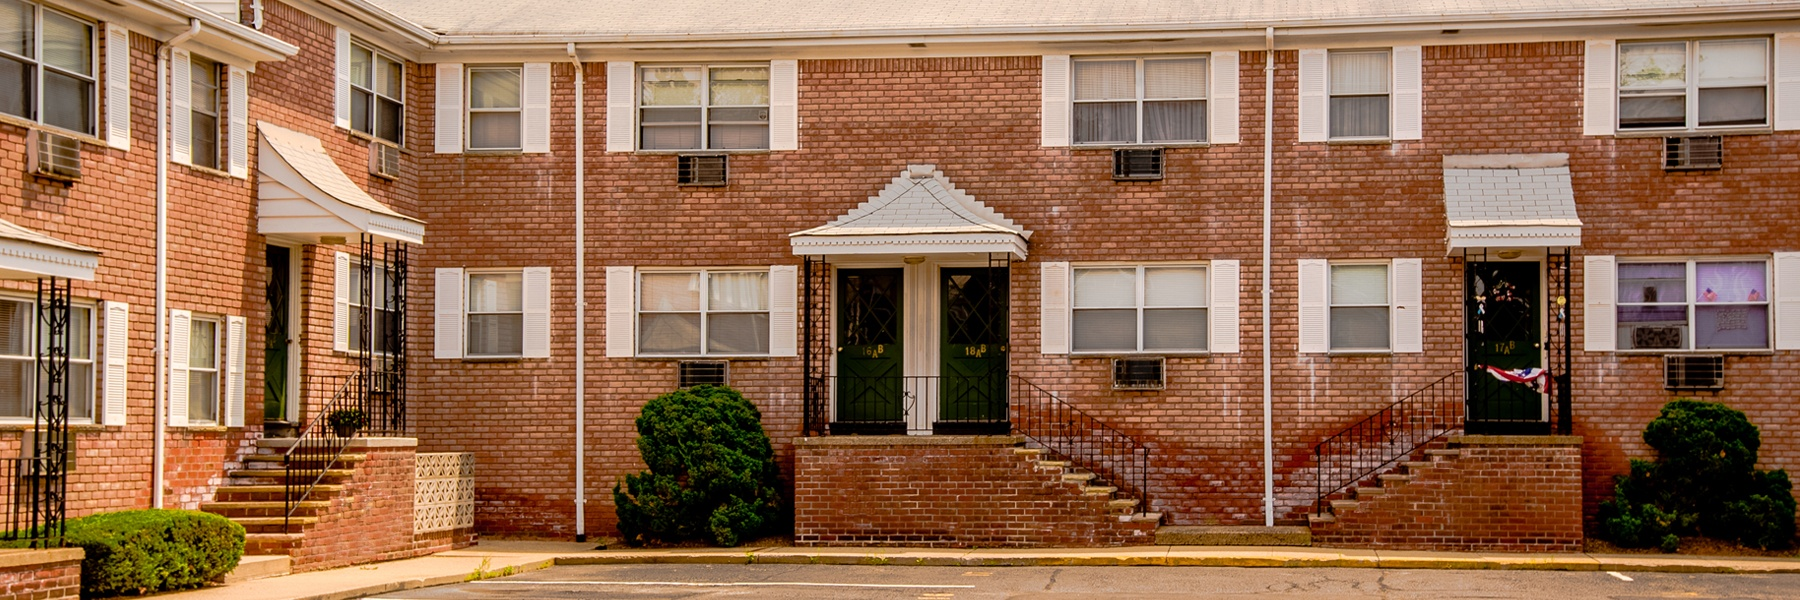 Maple Court Apartments For Rent in Ridgefield Park, NJ Building View